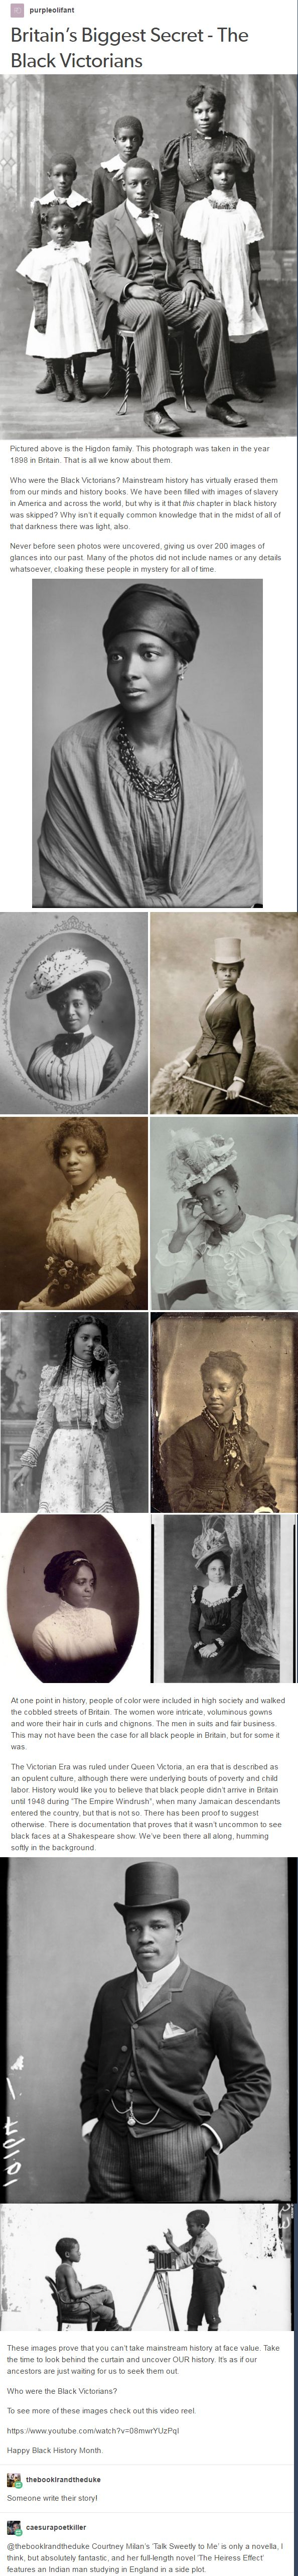 Britain's Biggest Secret - The Black Victorians. Who were the Black Victorians? Mainstream history has virtually erased them from our minds and history books. We have been filled with images of slavery in America and across the world, but why is it that this chapter in black history was skipped? Why isn't it equally common knowledge that in the midst of all of that darkness there was light, also. Never before seen photos were uncovered, giving us over 200 images of glances into our past.